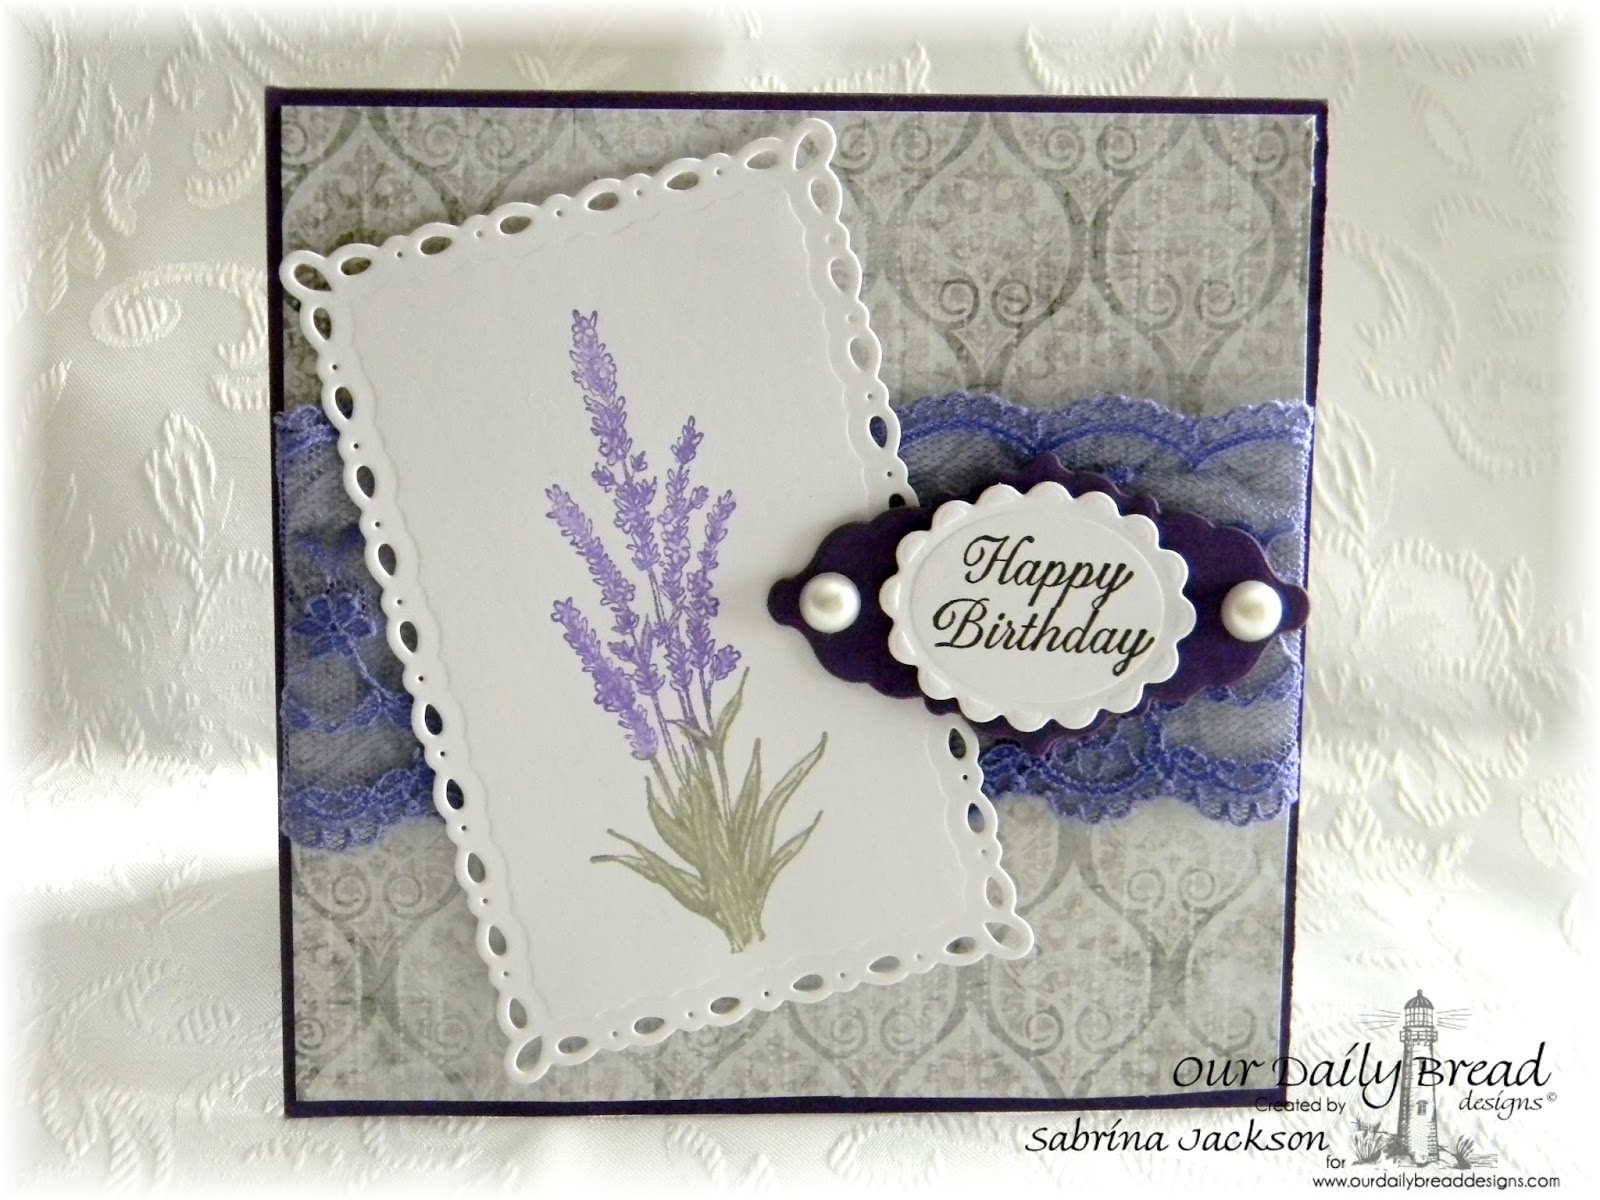 Stamps - Our Daily Bread Designs Lavender, Ornate Borders Sentiments, ODBD Custom Ornate Borders & Flower Dies